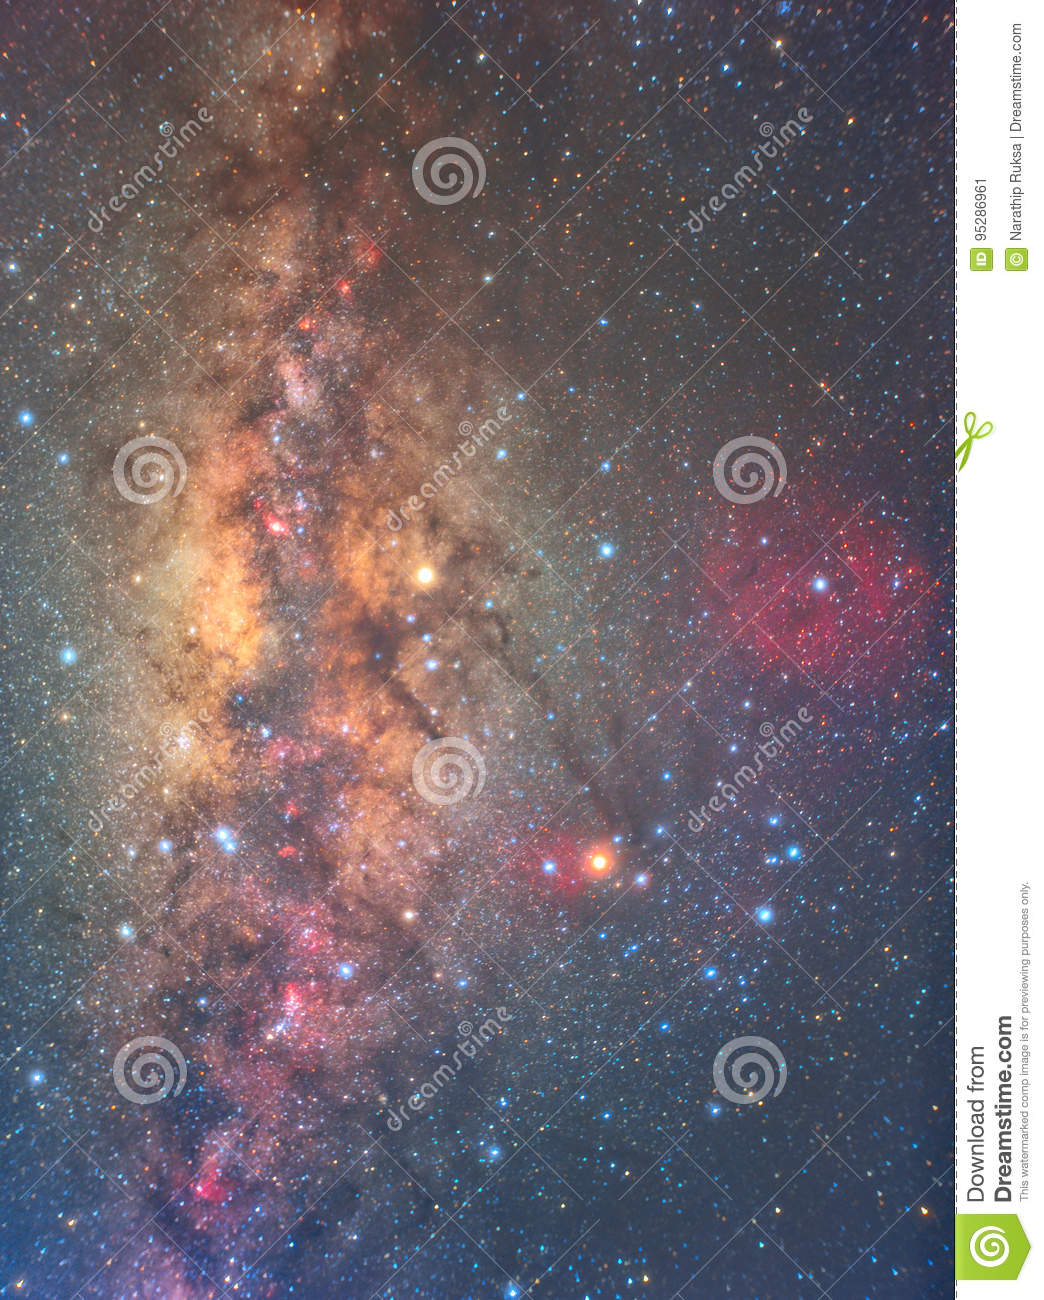 Clearly milky way on night sky with a million star and red nebul